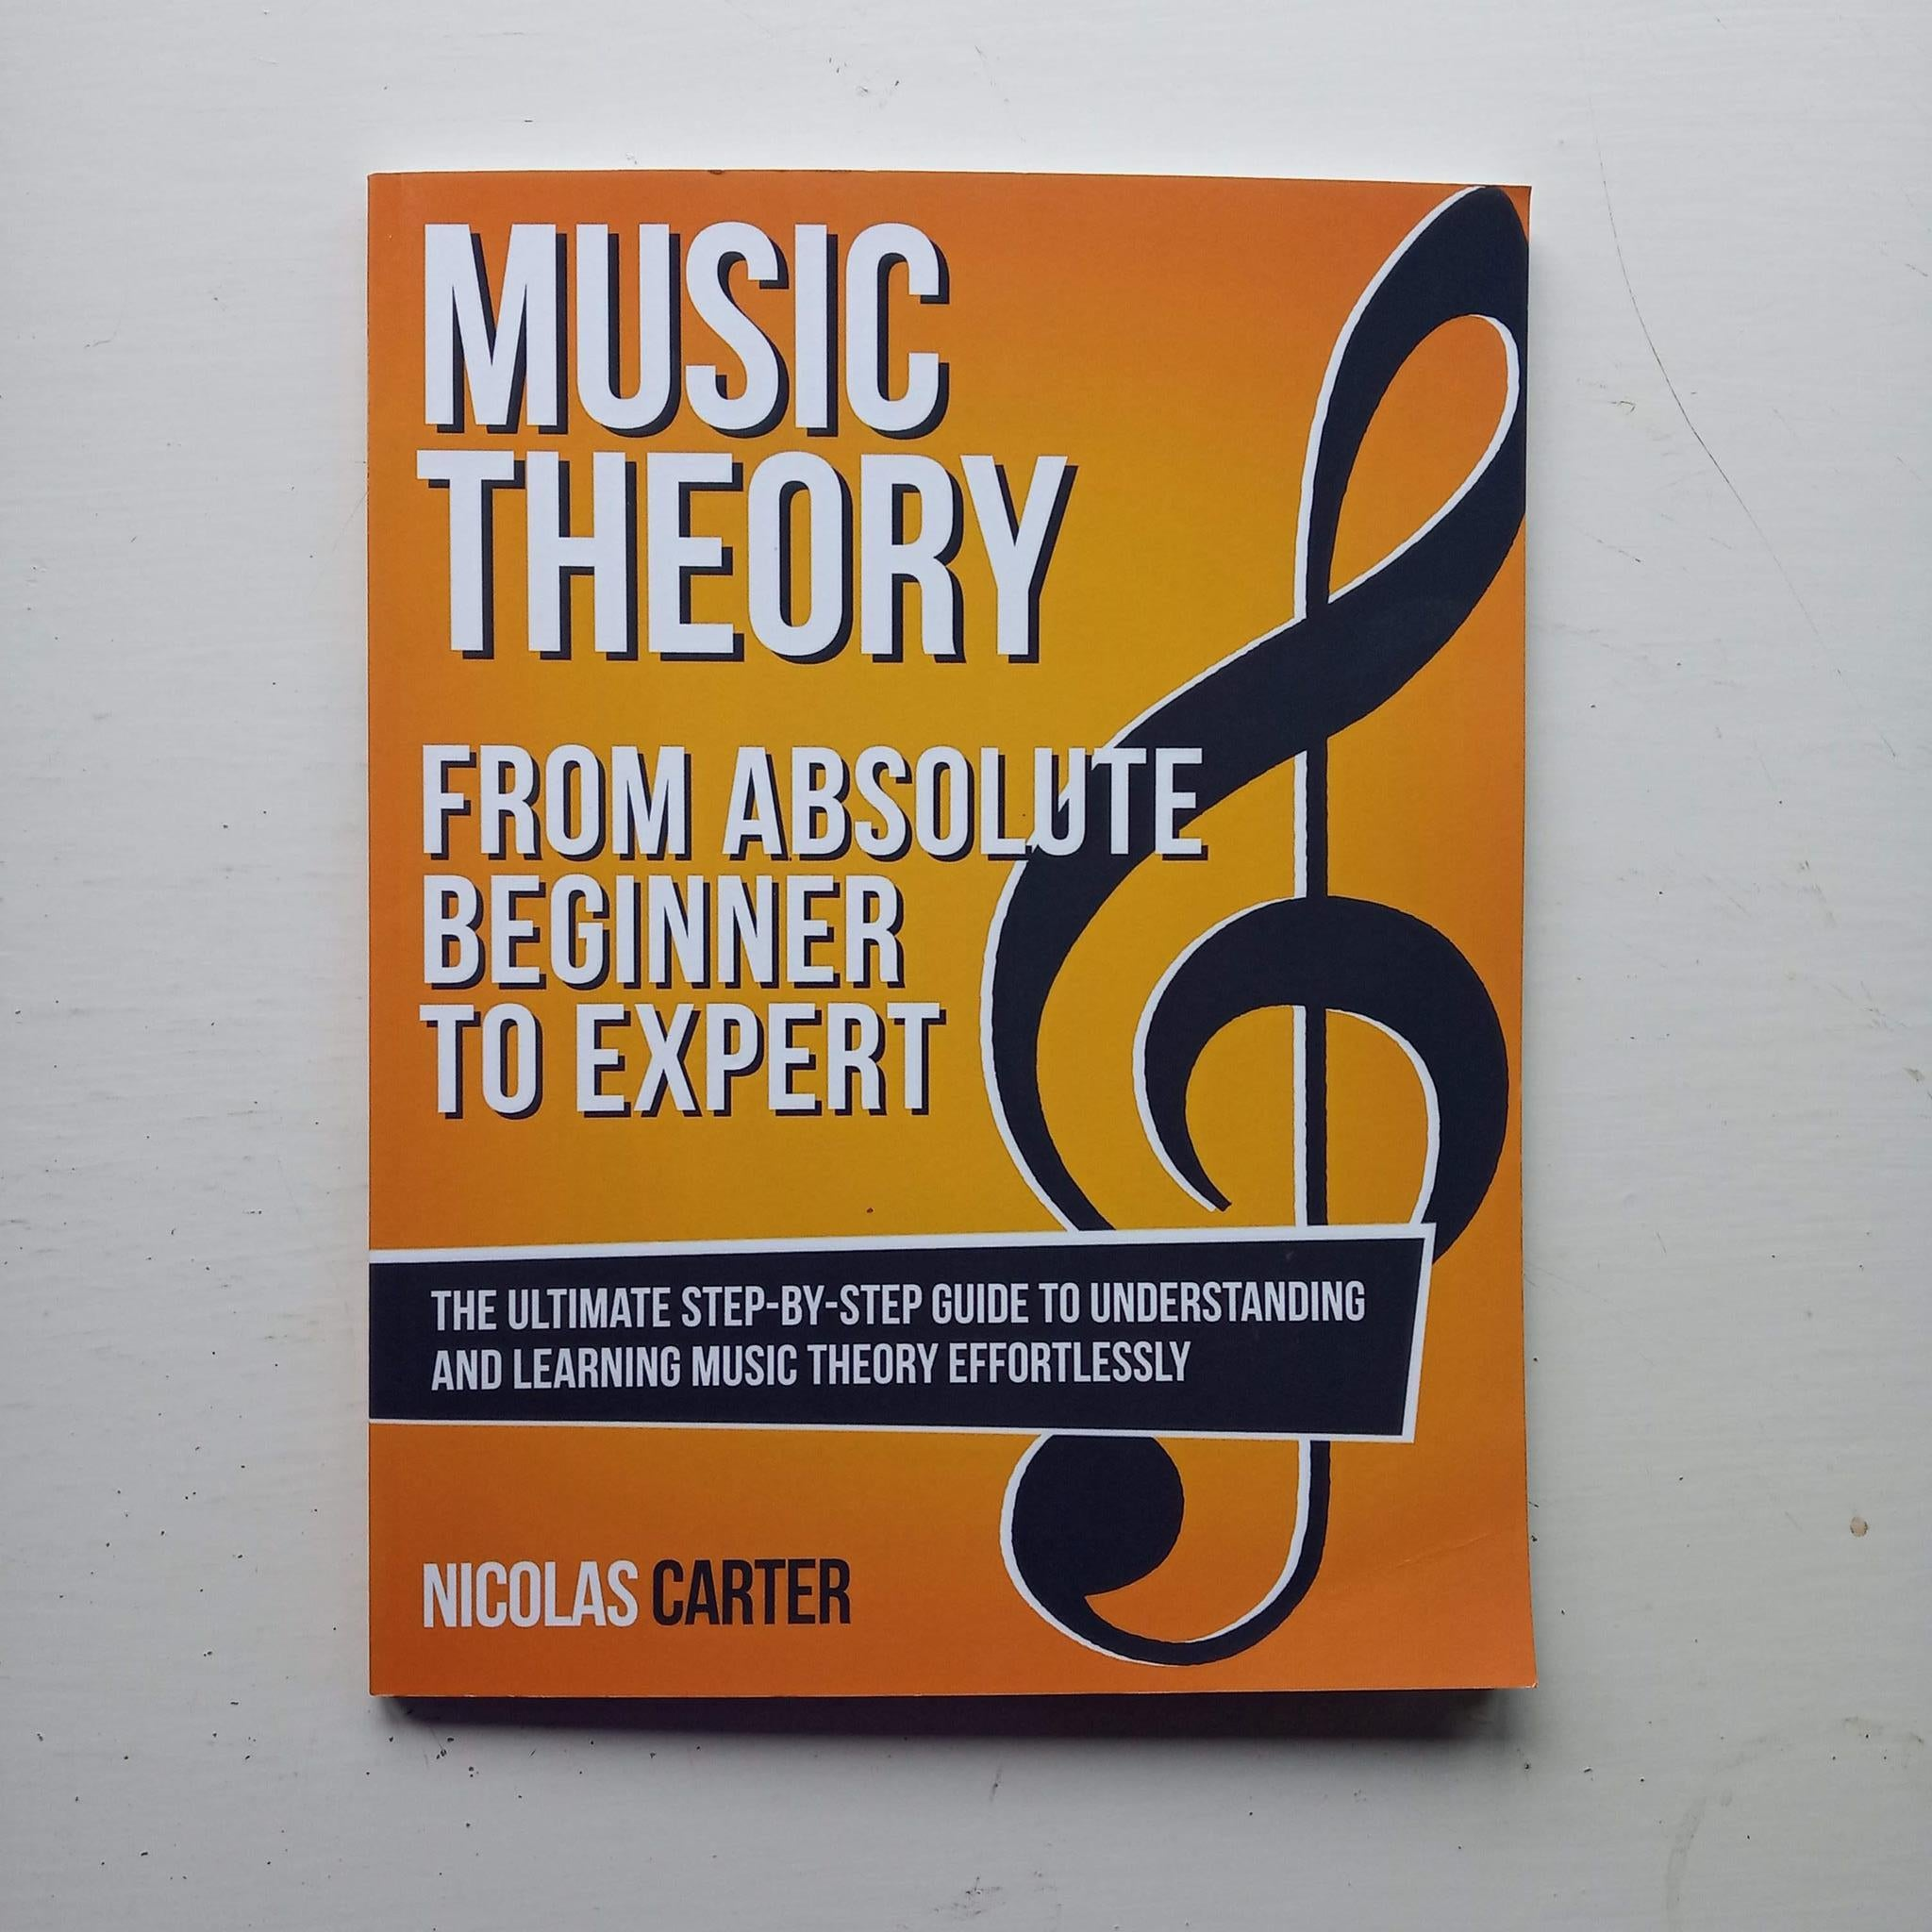 Music Theory from Absolute Beginner to Expert by Nicolas Carter